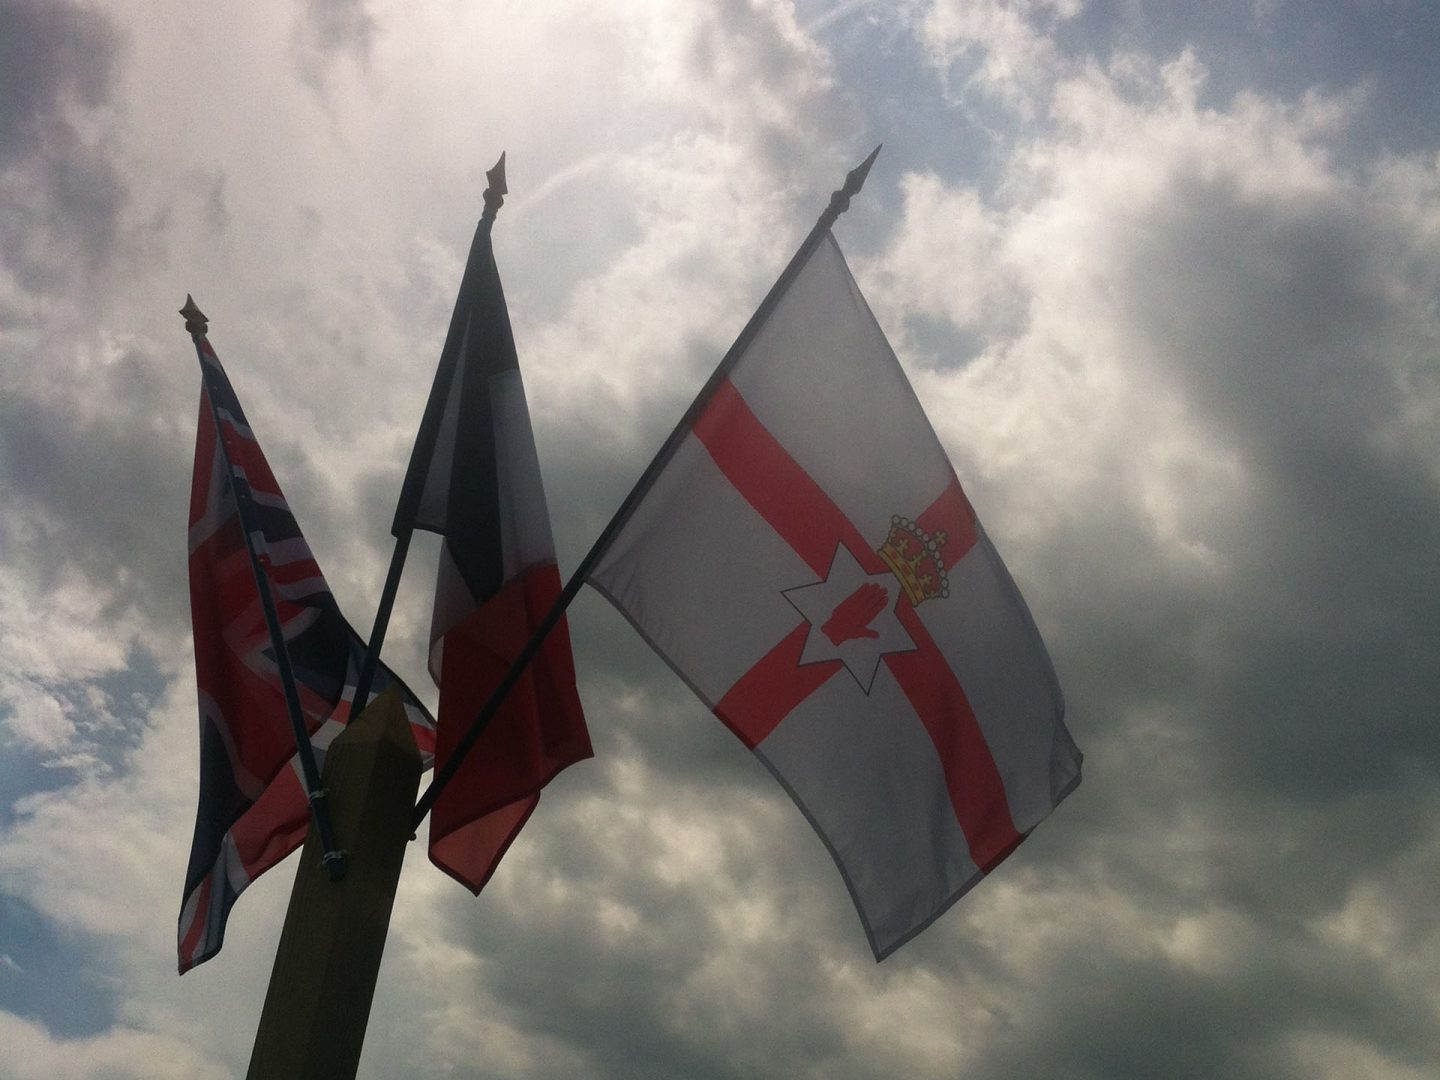 Ulster flag at Pegasus Bridge